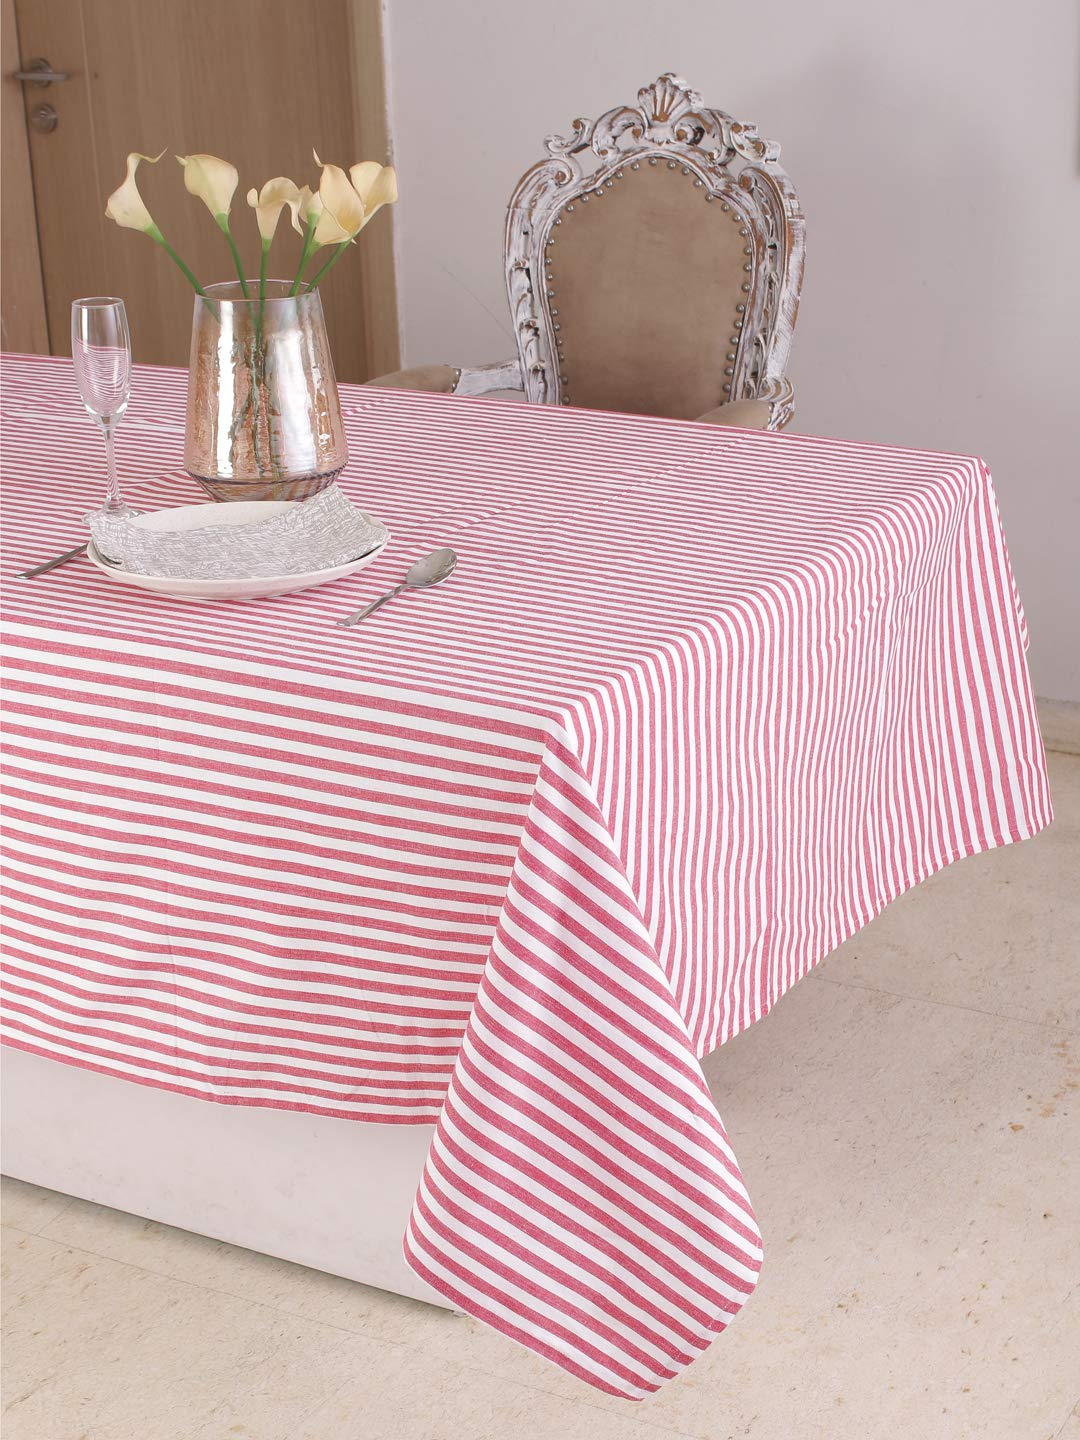 Cotton Square Table Cloth (52 x 52 Inches), Red & White Stripe - Perfect For Spring, Summer, Holidays - Christmas And For Everyday Use by DG Collection